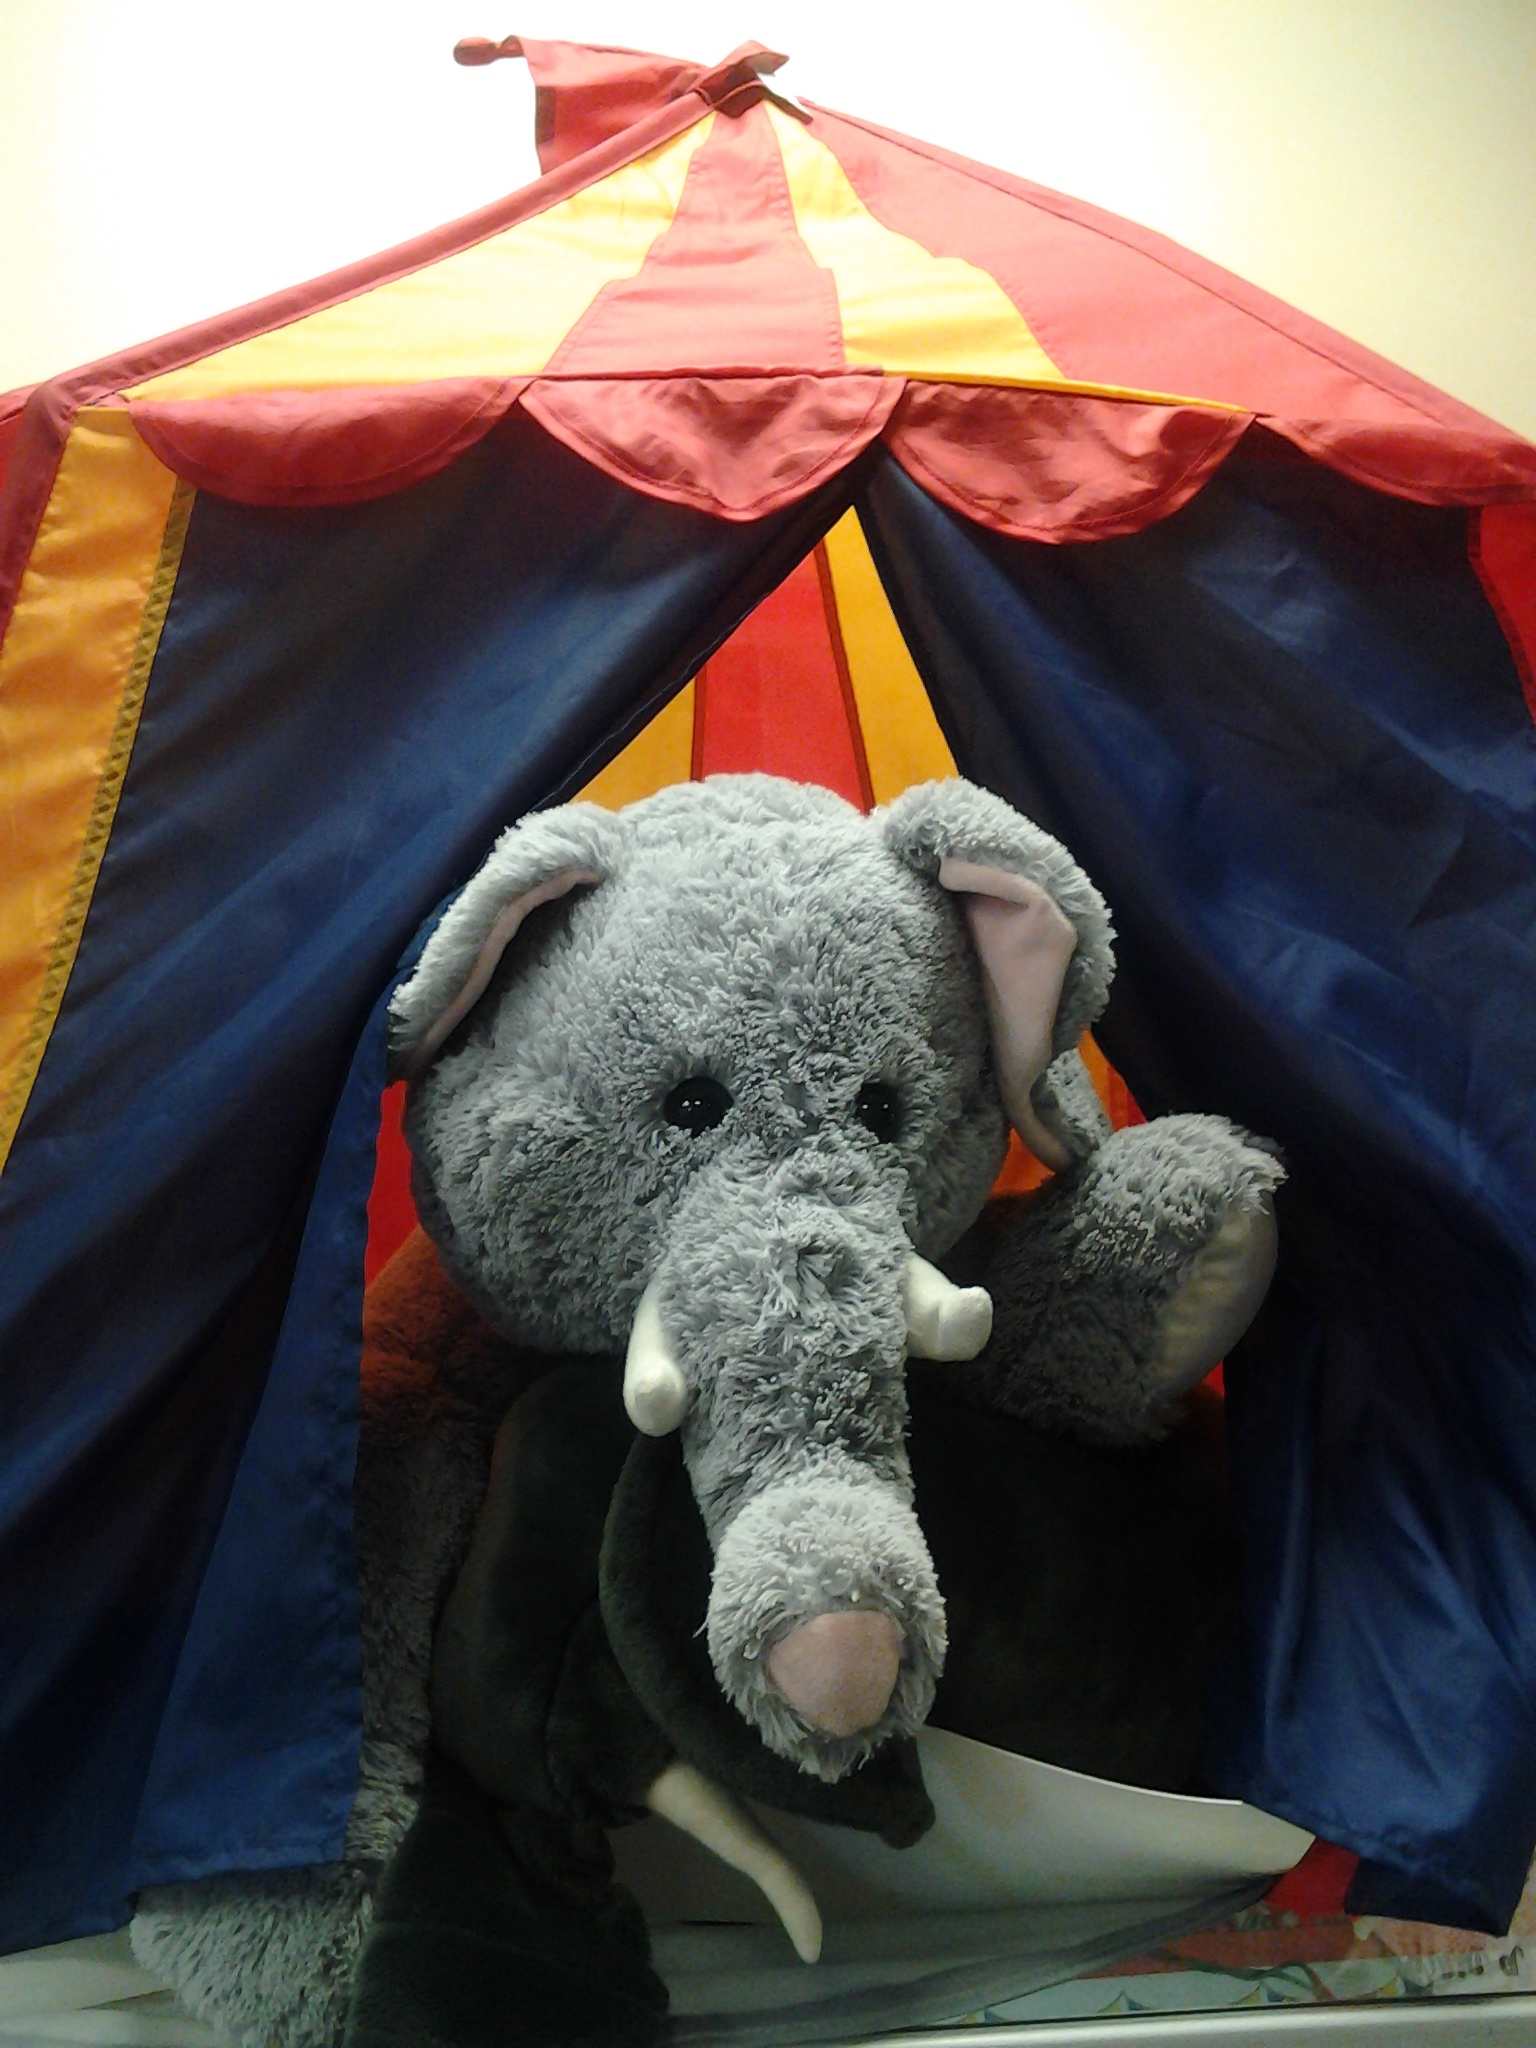 Stuffed Animal Sleepover Circus Camp